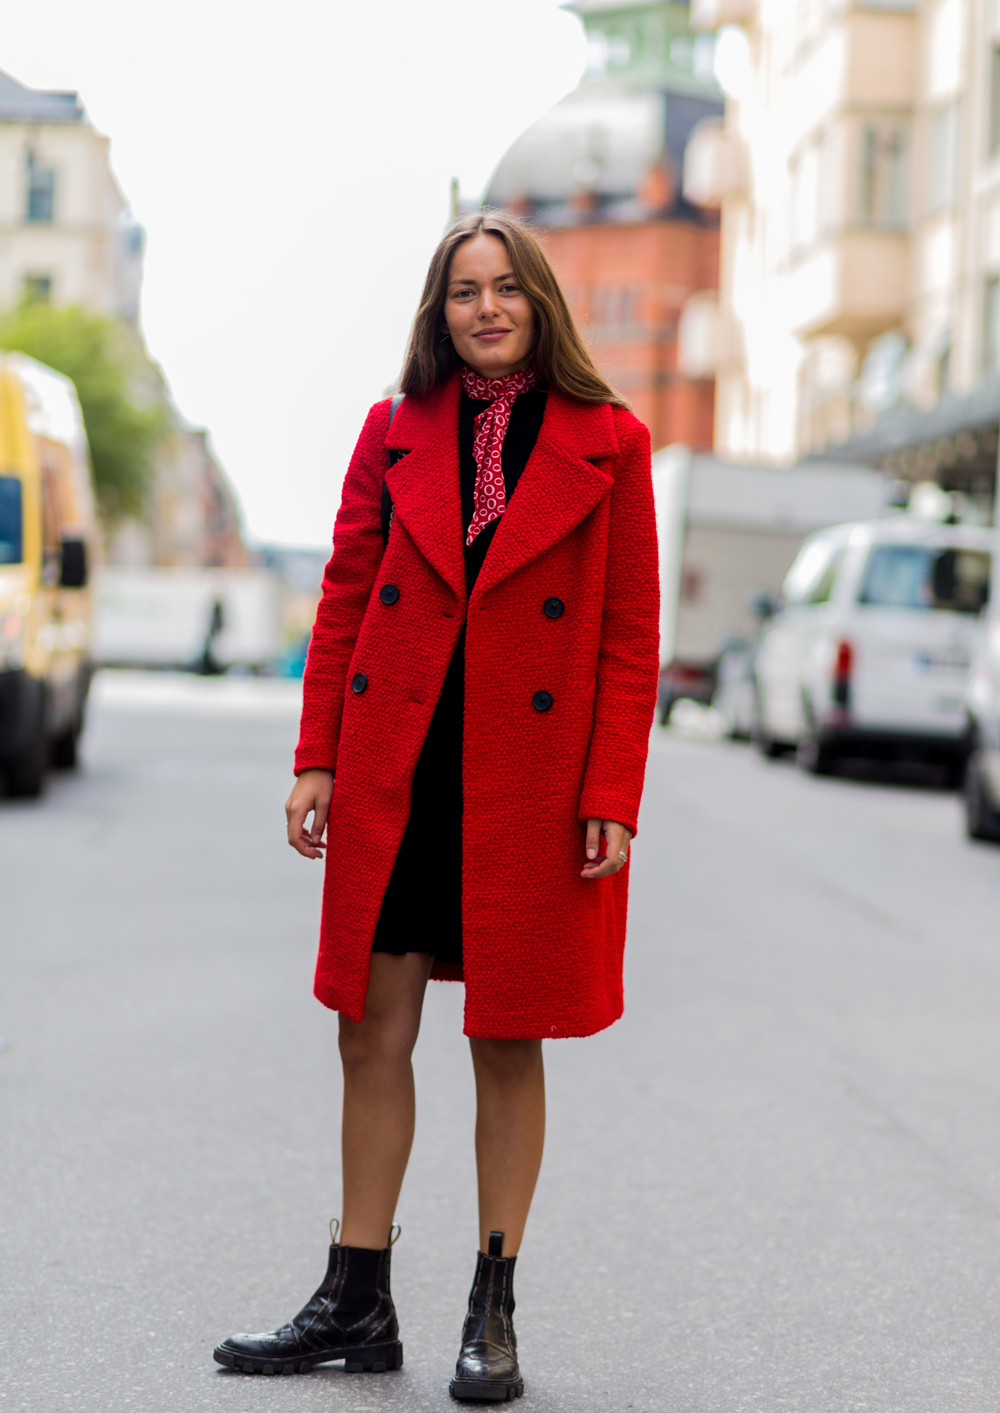 STOCKHOLM, SWEDEN - AUGUST 30: Victoria Saceanu wearing a red coat, black Chelsea boots, a red bandana scarf and black dress outside Lexington during the second day of the Stockholm Fashion Week Spring/Summer 2017 on August 30, 2016 in Stockholm, Sweden. (Photo by Christian Vierig/Getty Images)